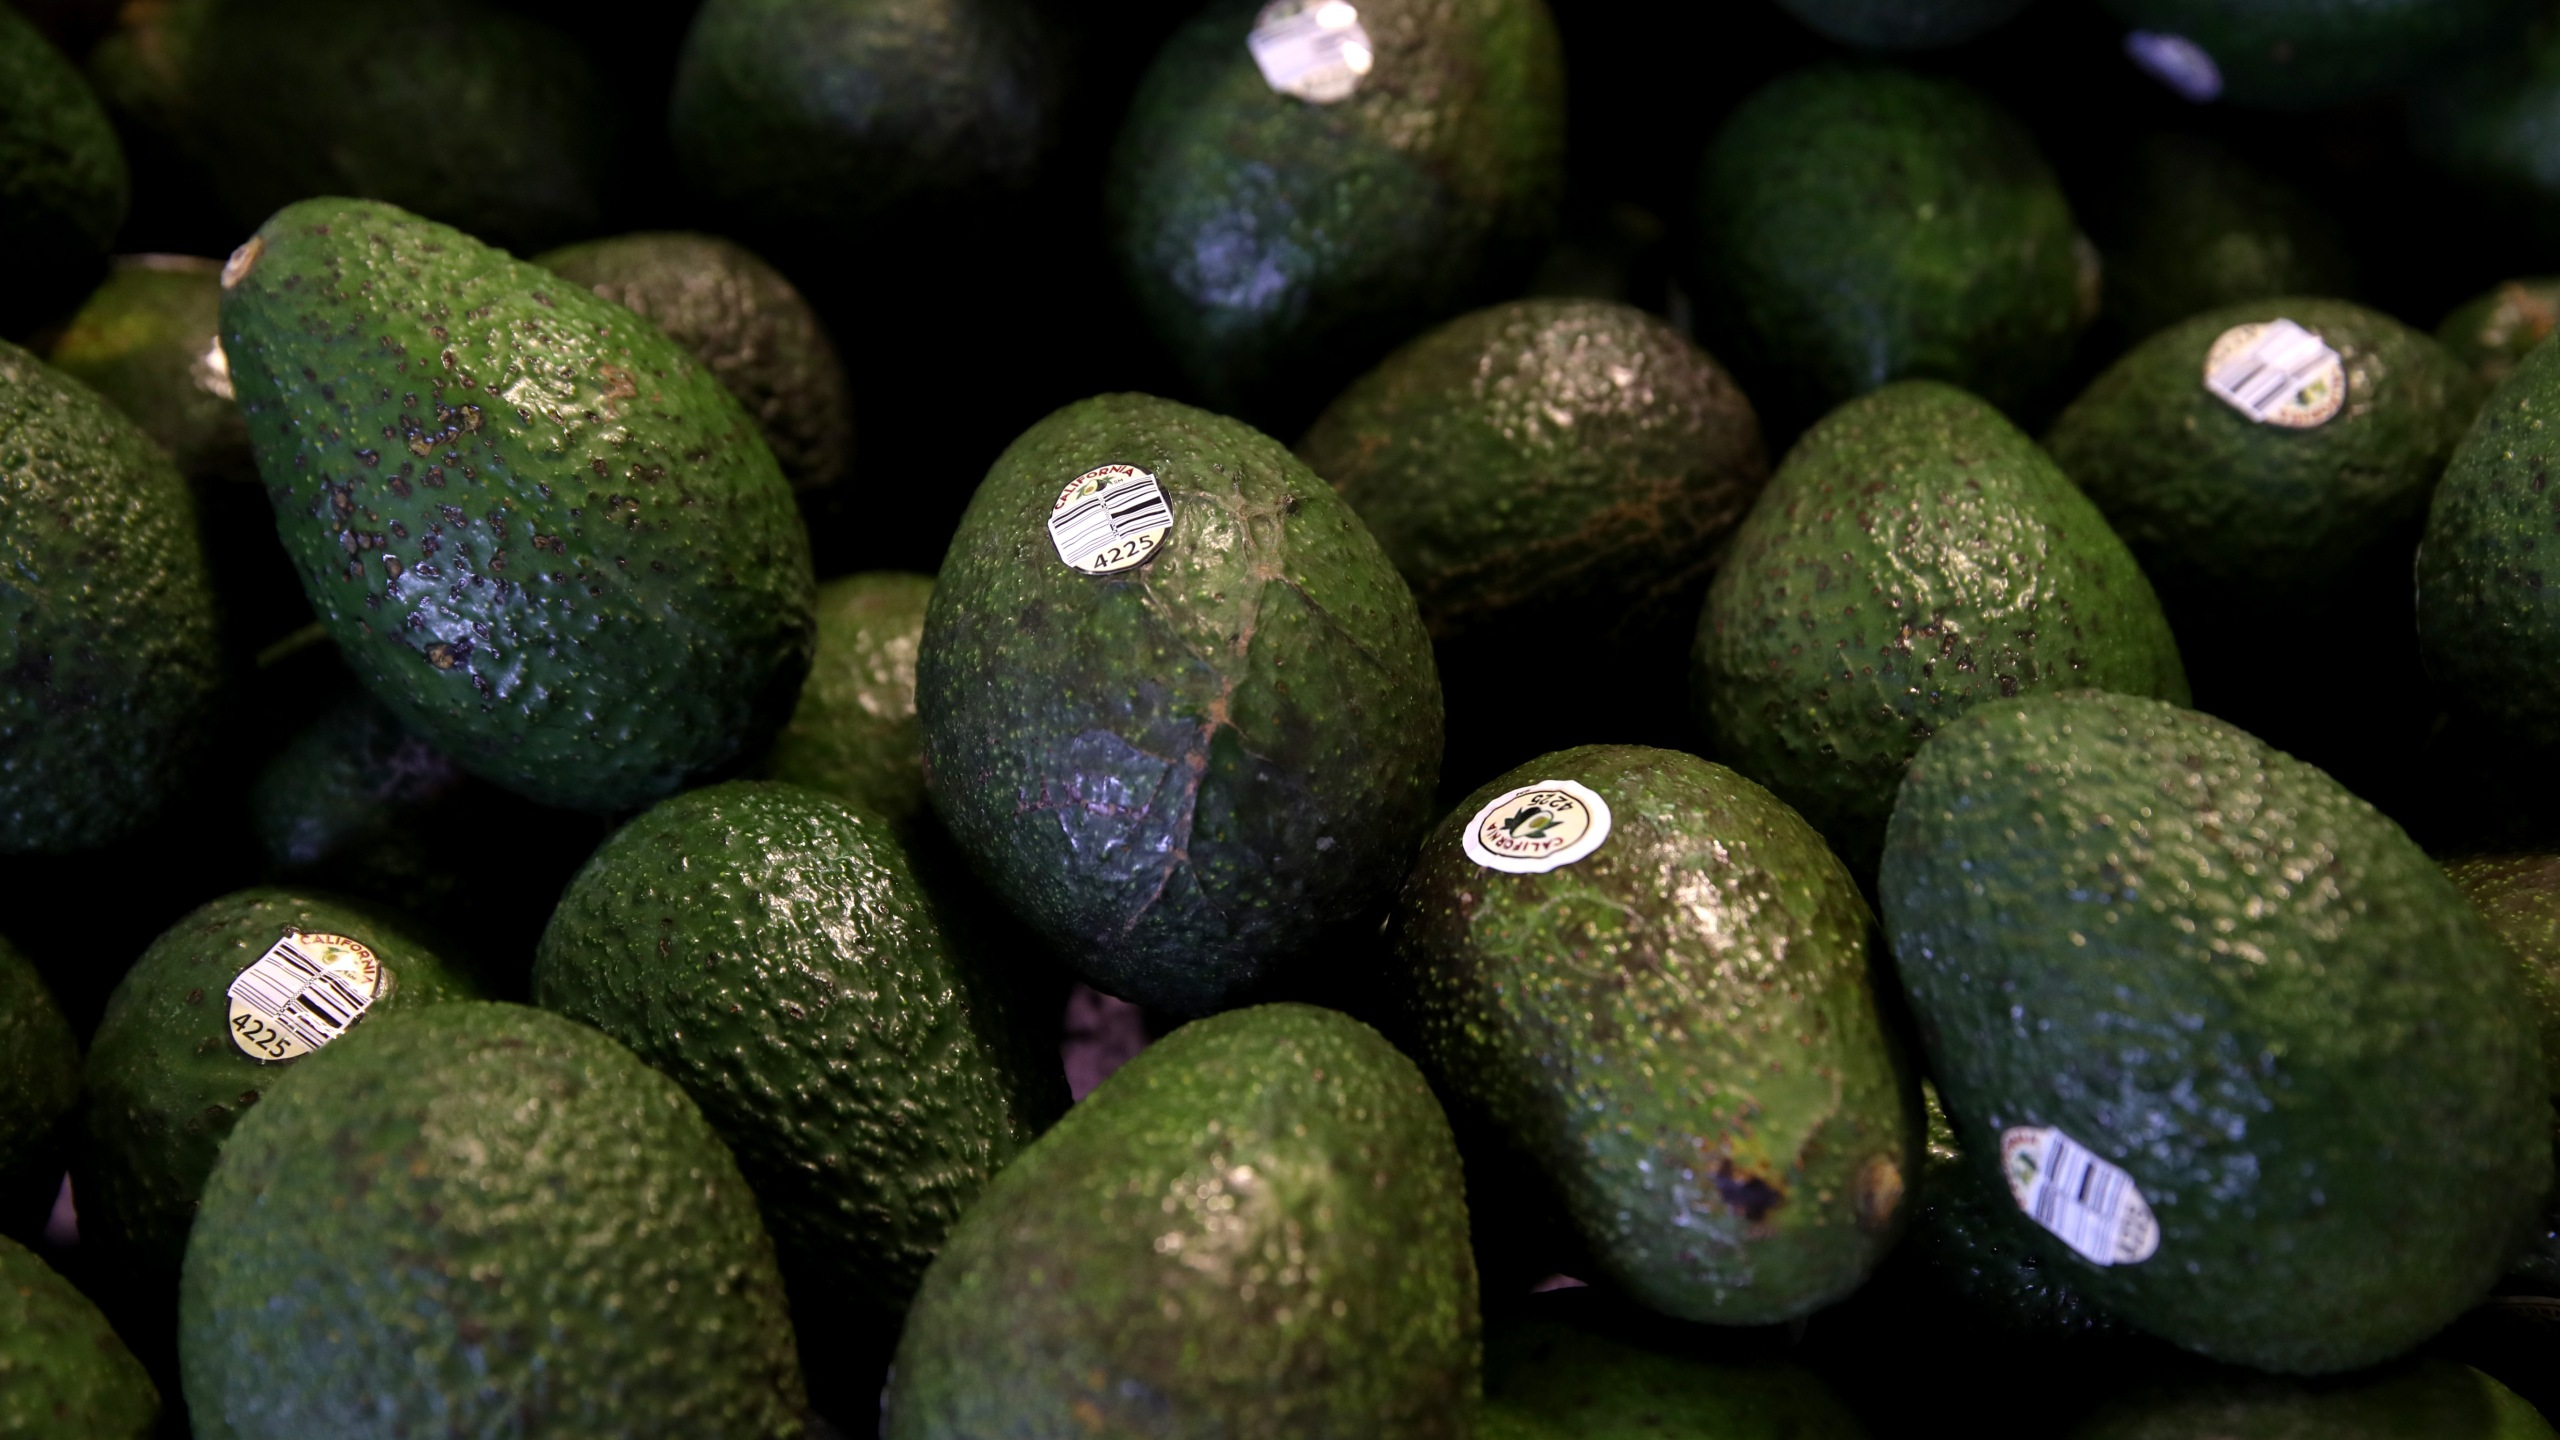 Avocados are displayed at a produce market on April 2, 2019, in San Francisco.(Credit: Justin Sullivan/Getty Images)